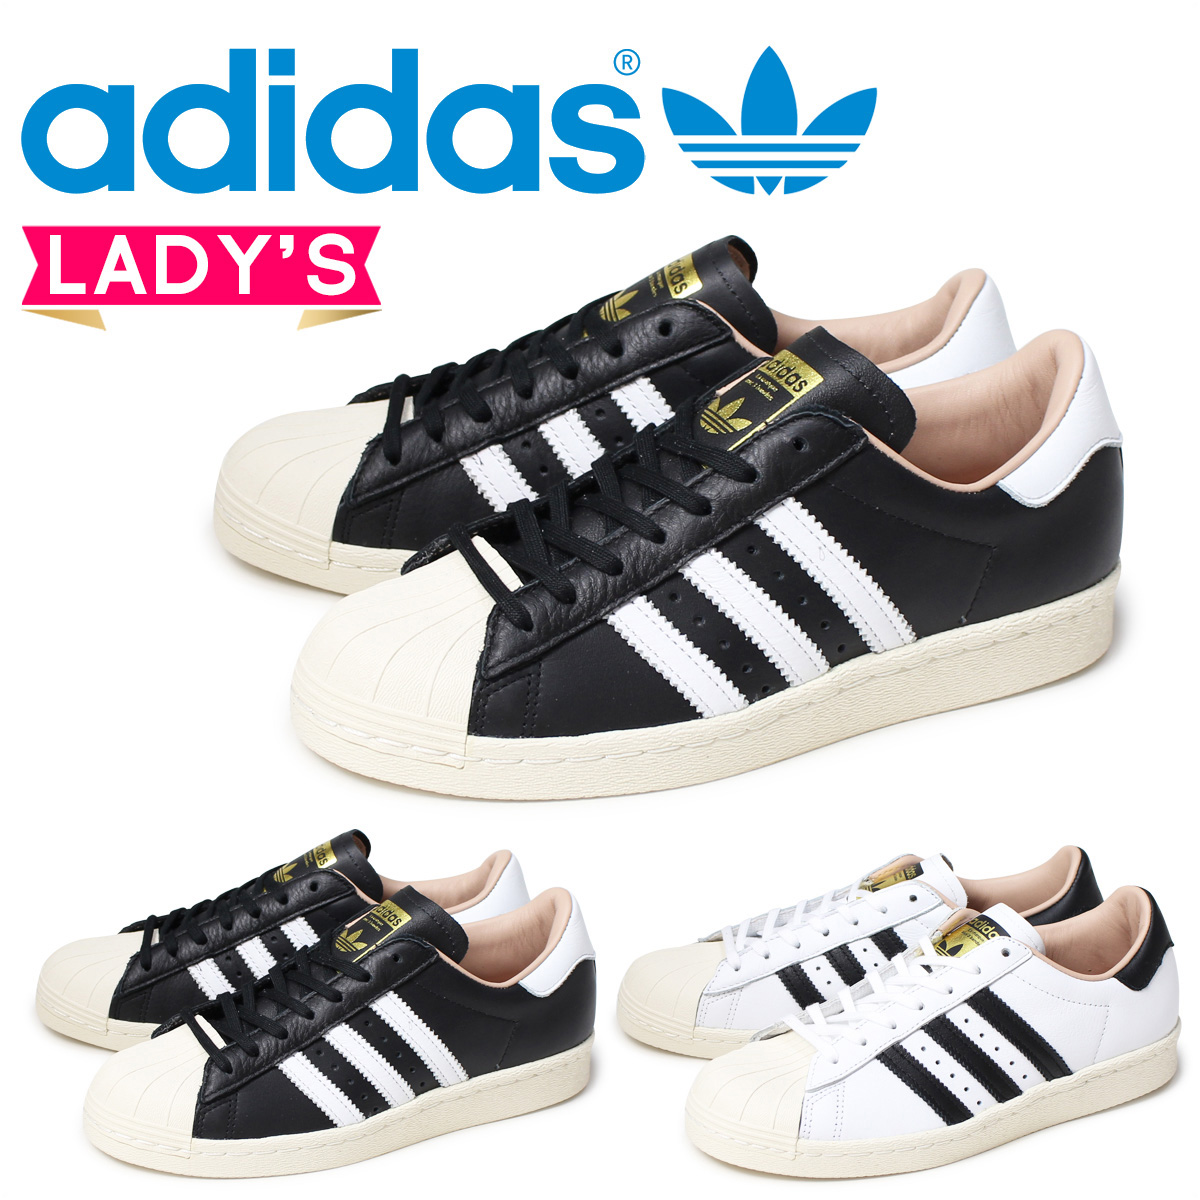 88c54717d90 Adidas superstar adidas Originals Lady s sneakers SUPERSTAR 80S W BY2957  BY2958 shoes white black originals